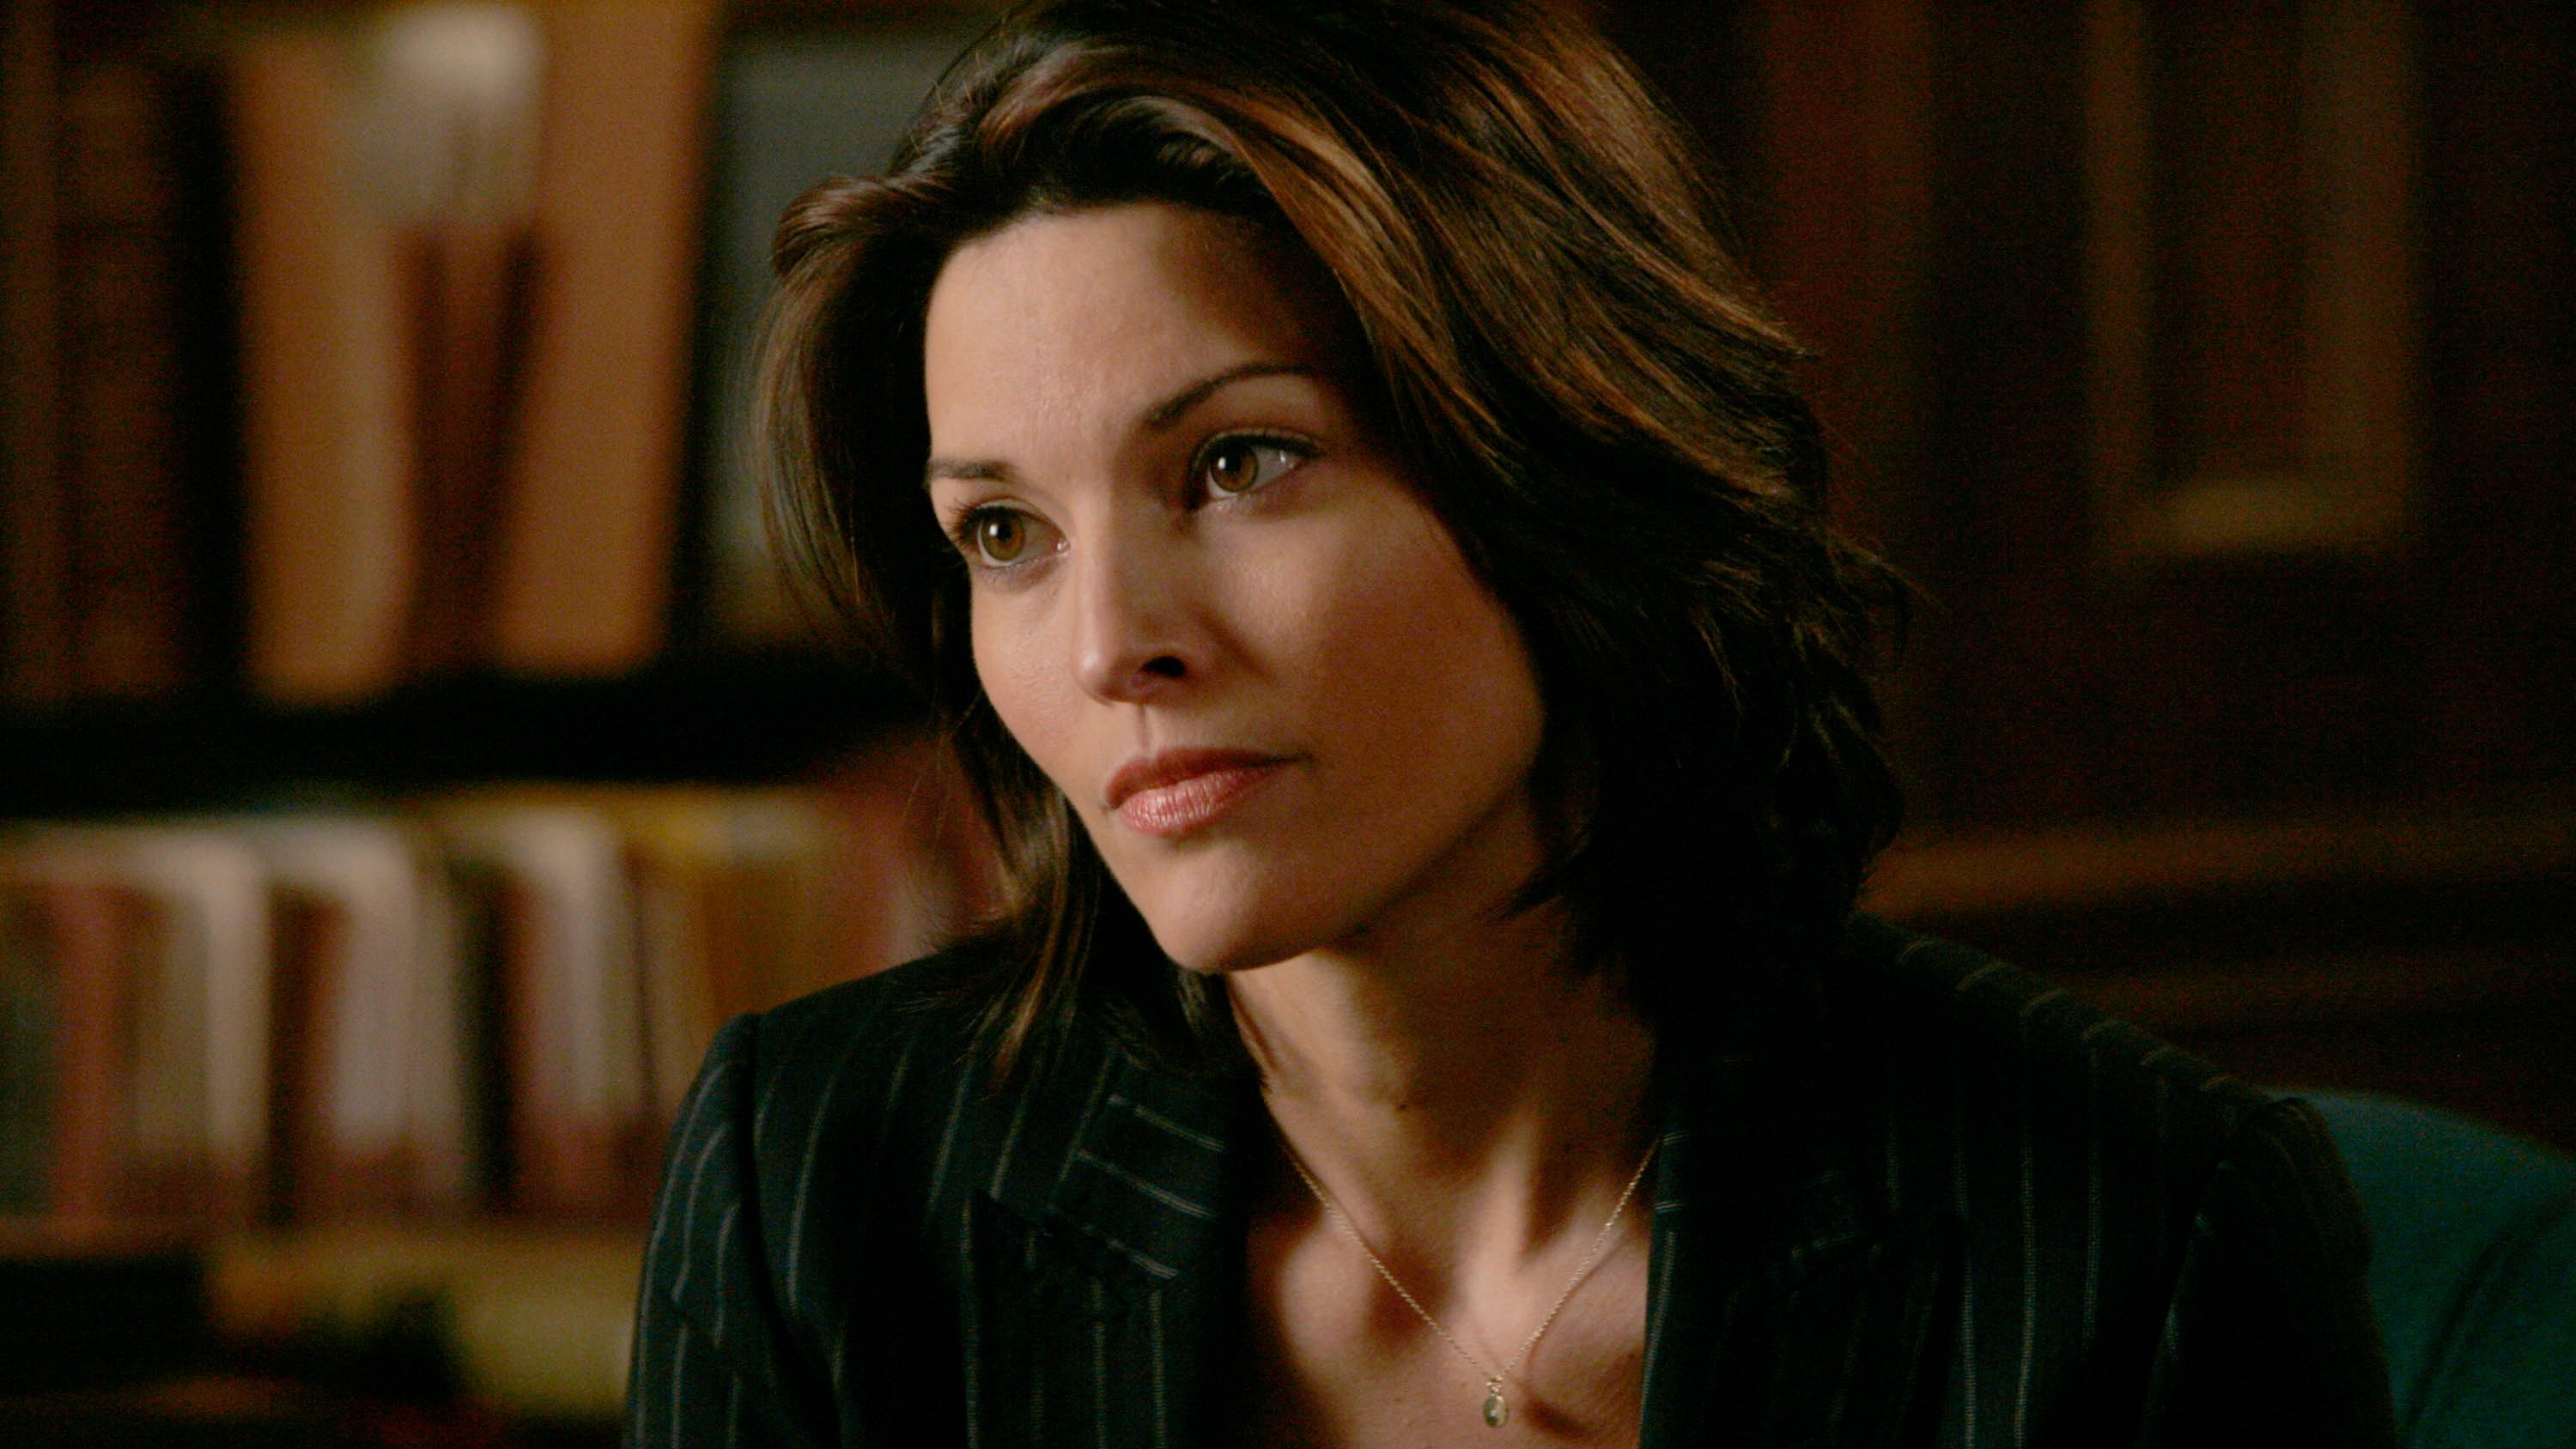 Widescreen Hd Alana De La Garza Law And Order Alana Law And